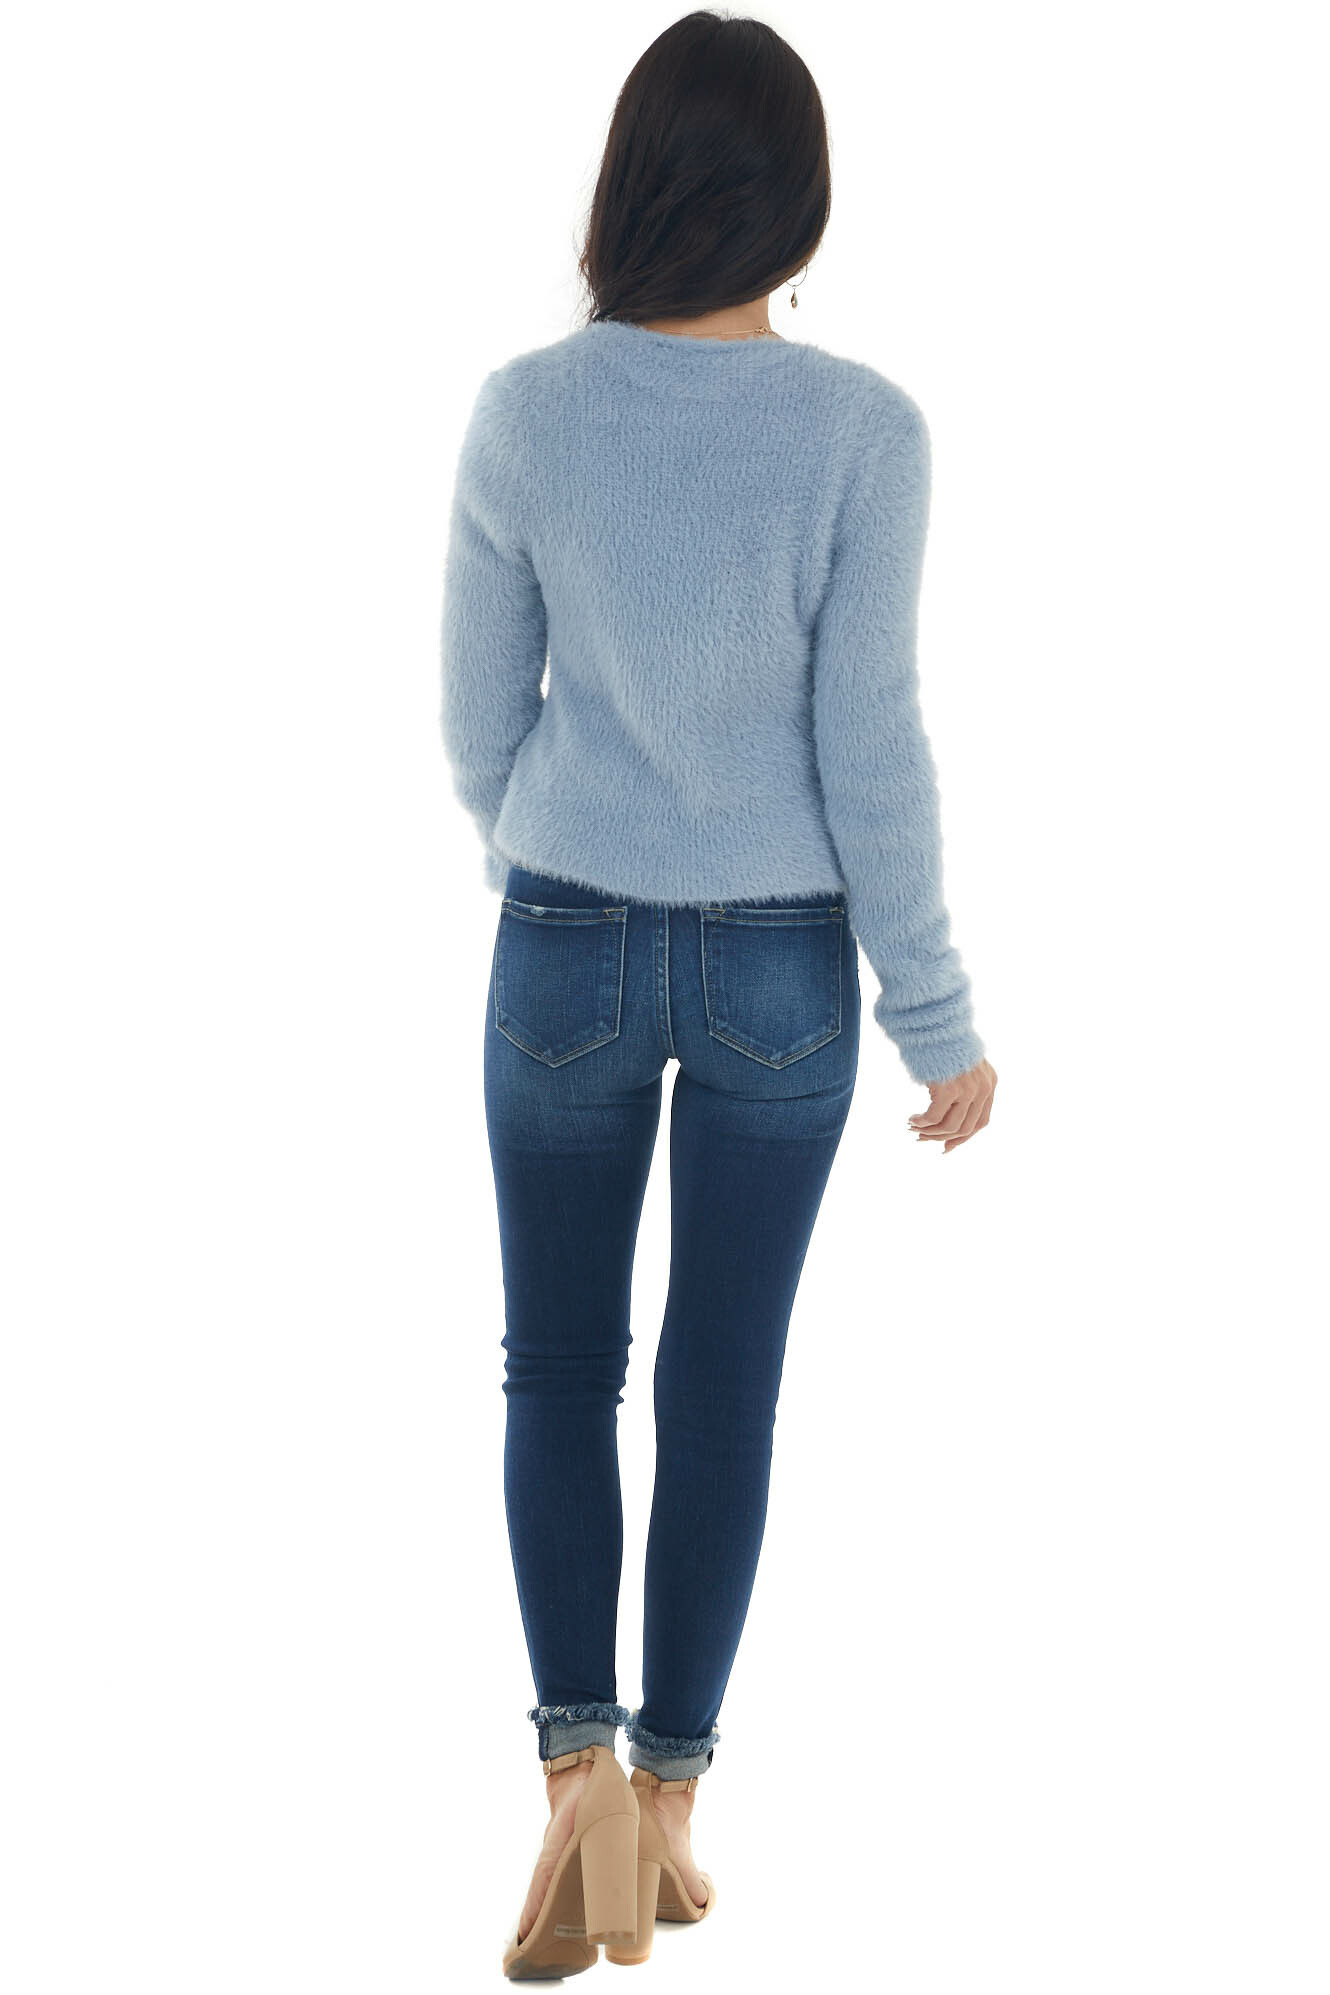 Powder Blue Front Tie Brushed Knit Cardigan